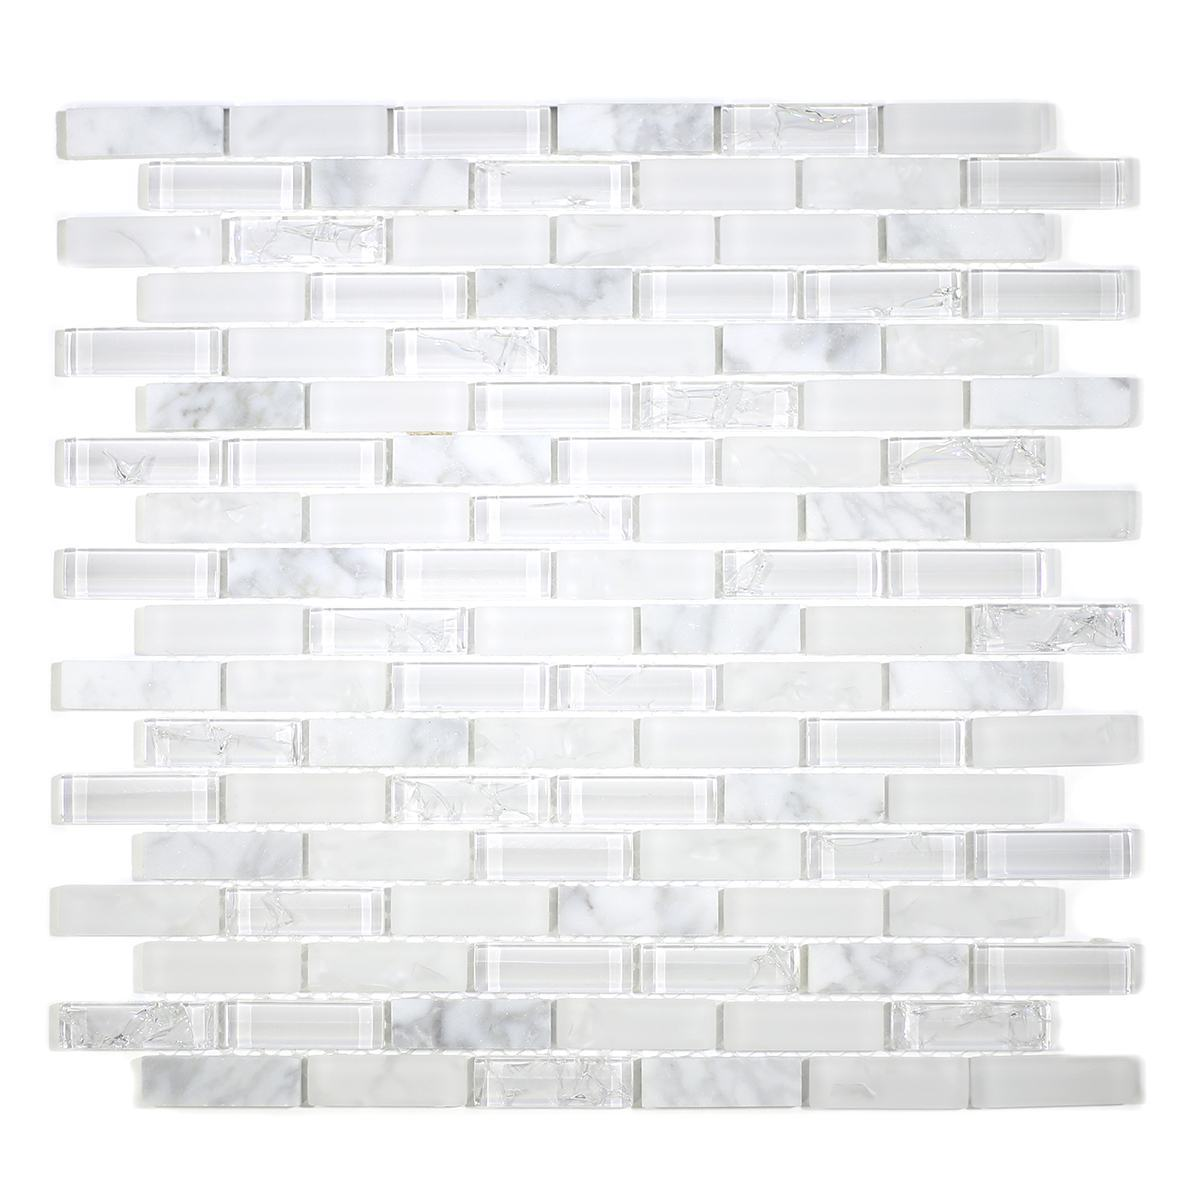 "MA81-LB  2"" BRICK GLASS AND STONE CRACKLE MOSAIC"